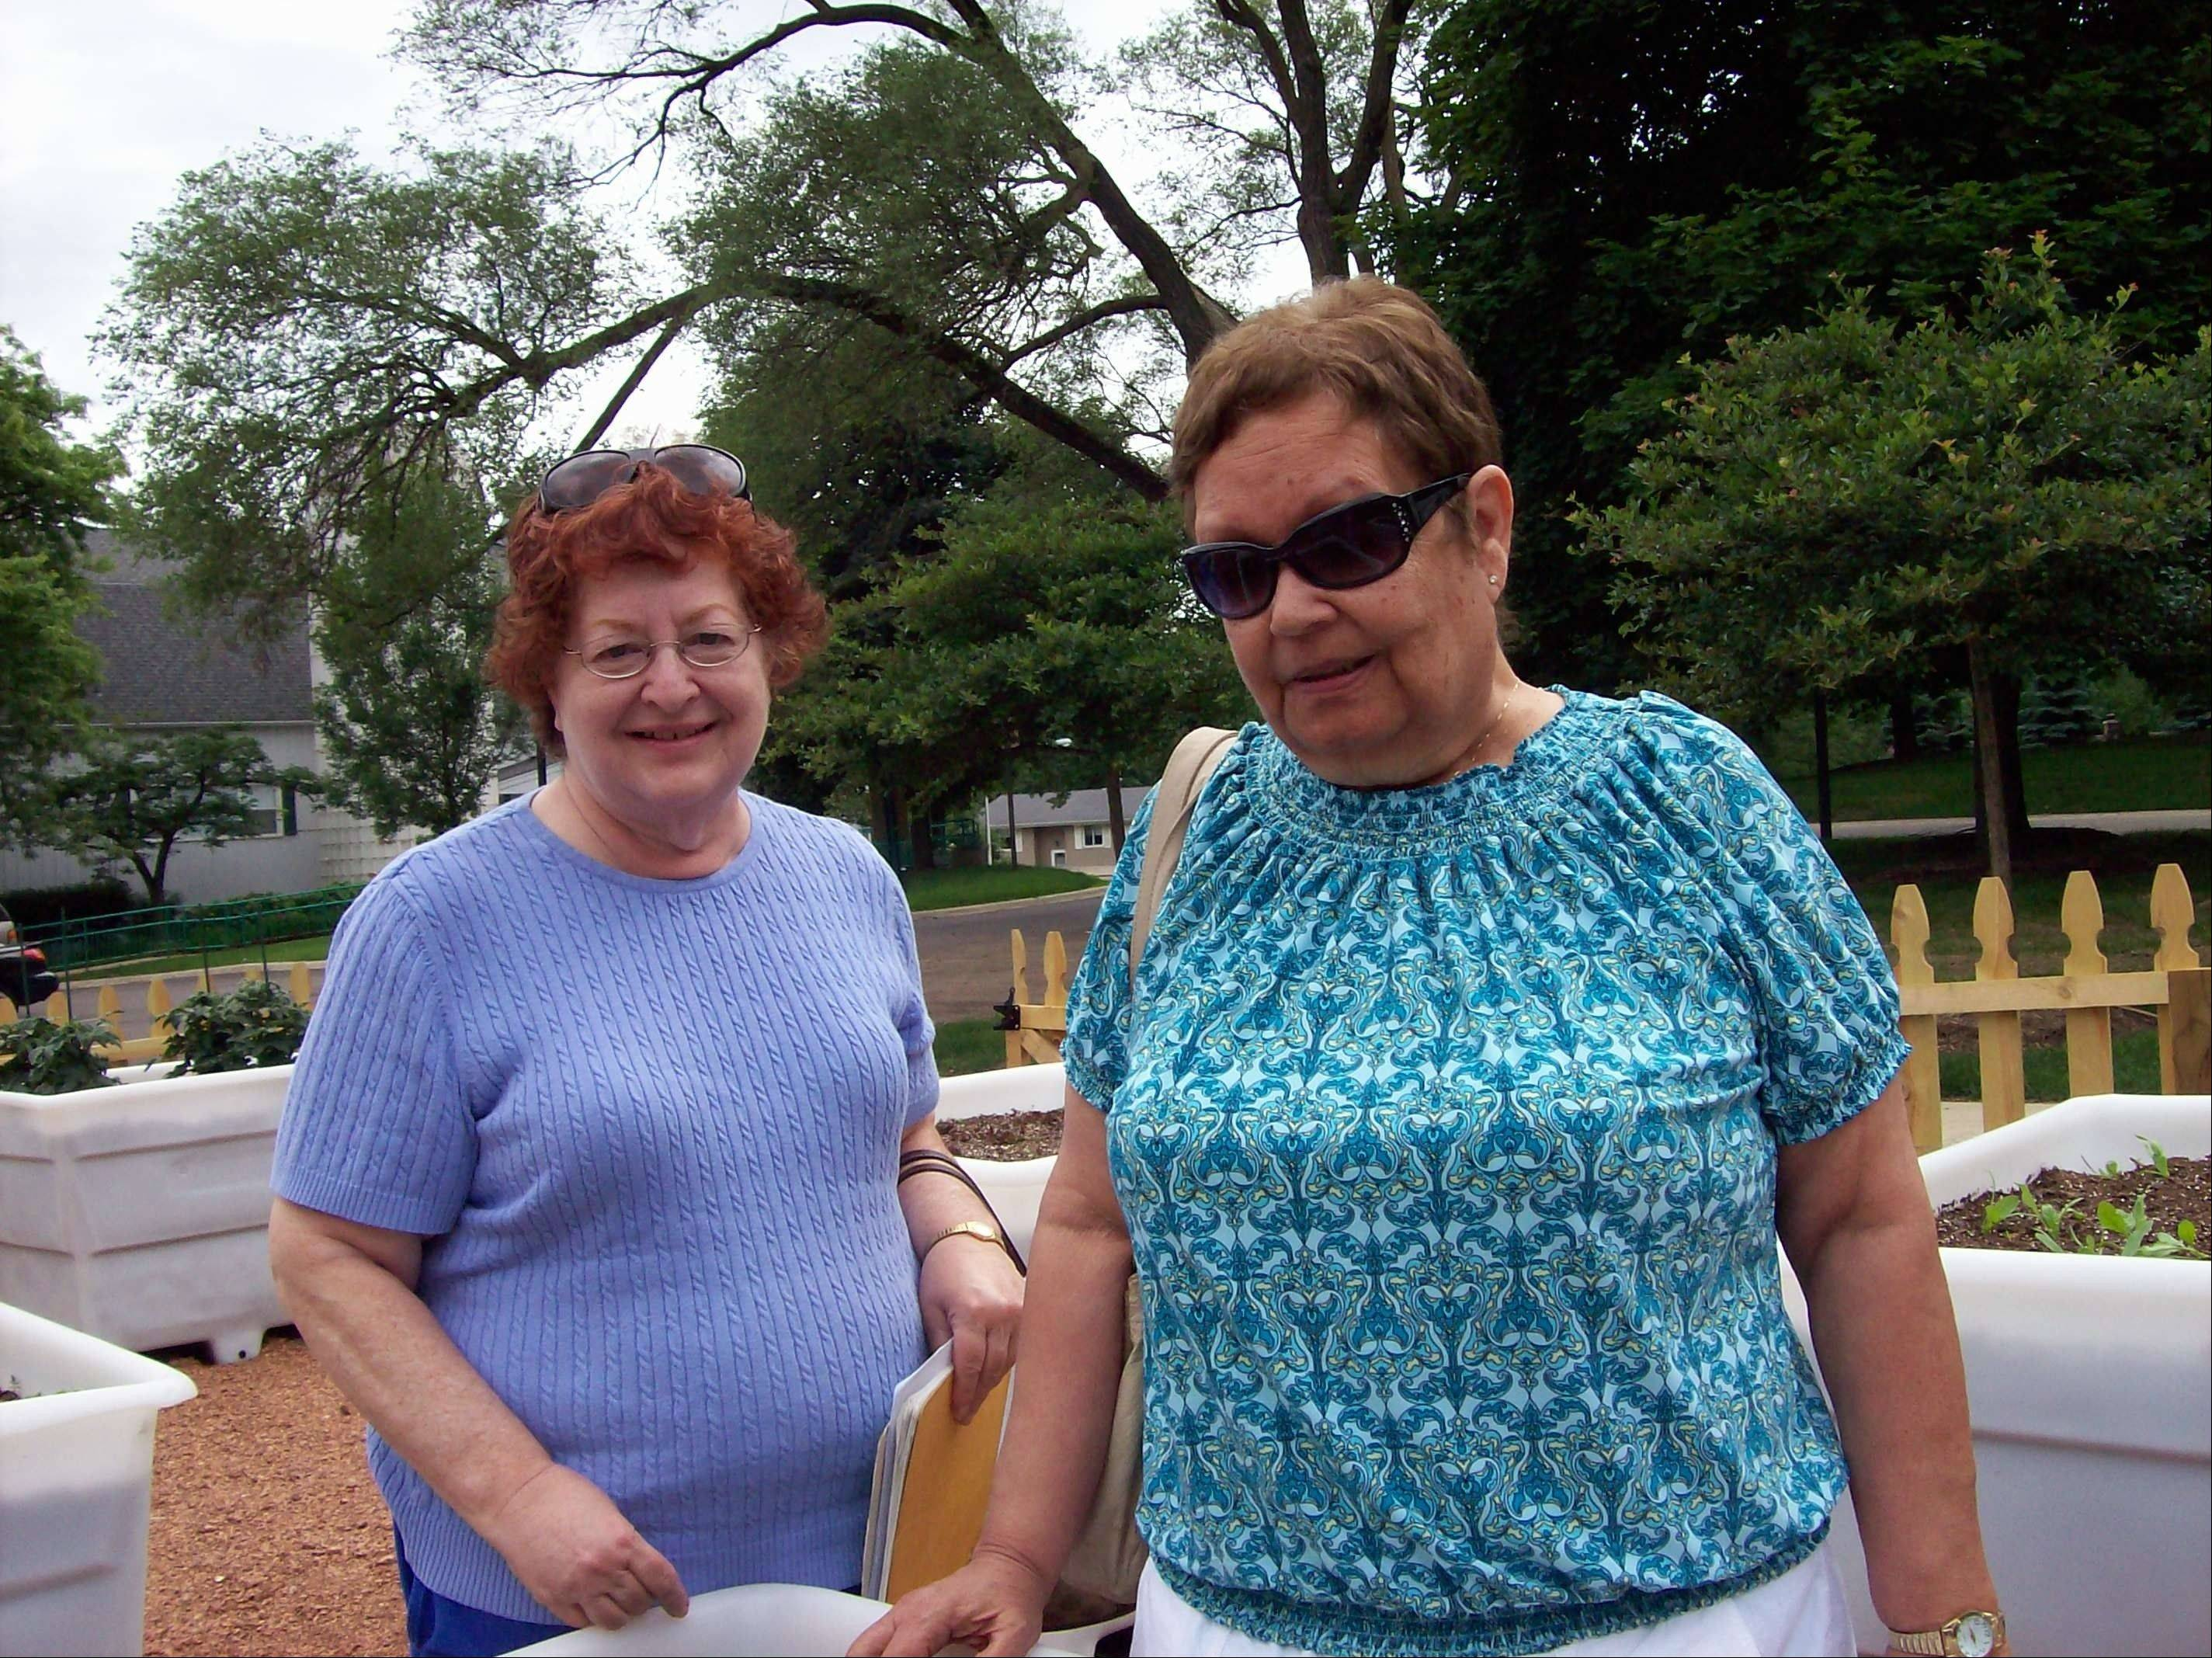 Pictured in the intergenerational produce garden are Bonit Karlin, left, and Esther Alm, both participants of the senior center program at The Barn in Schaumburg.